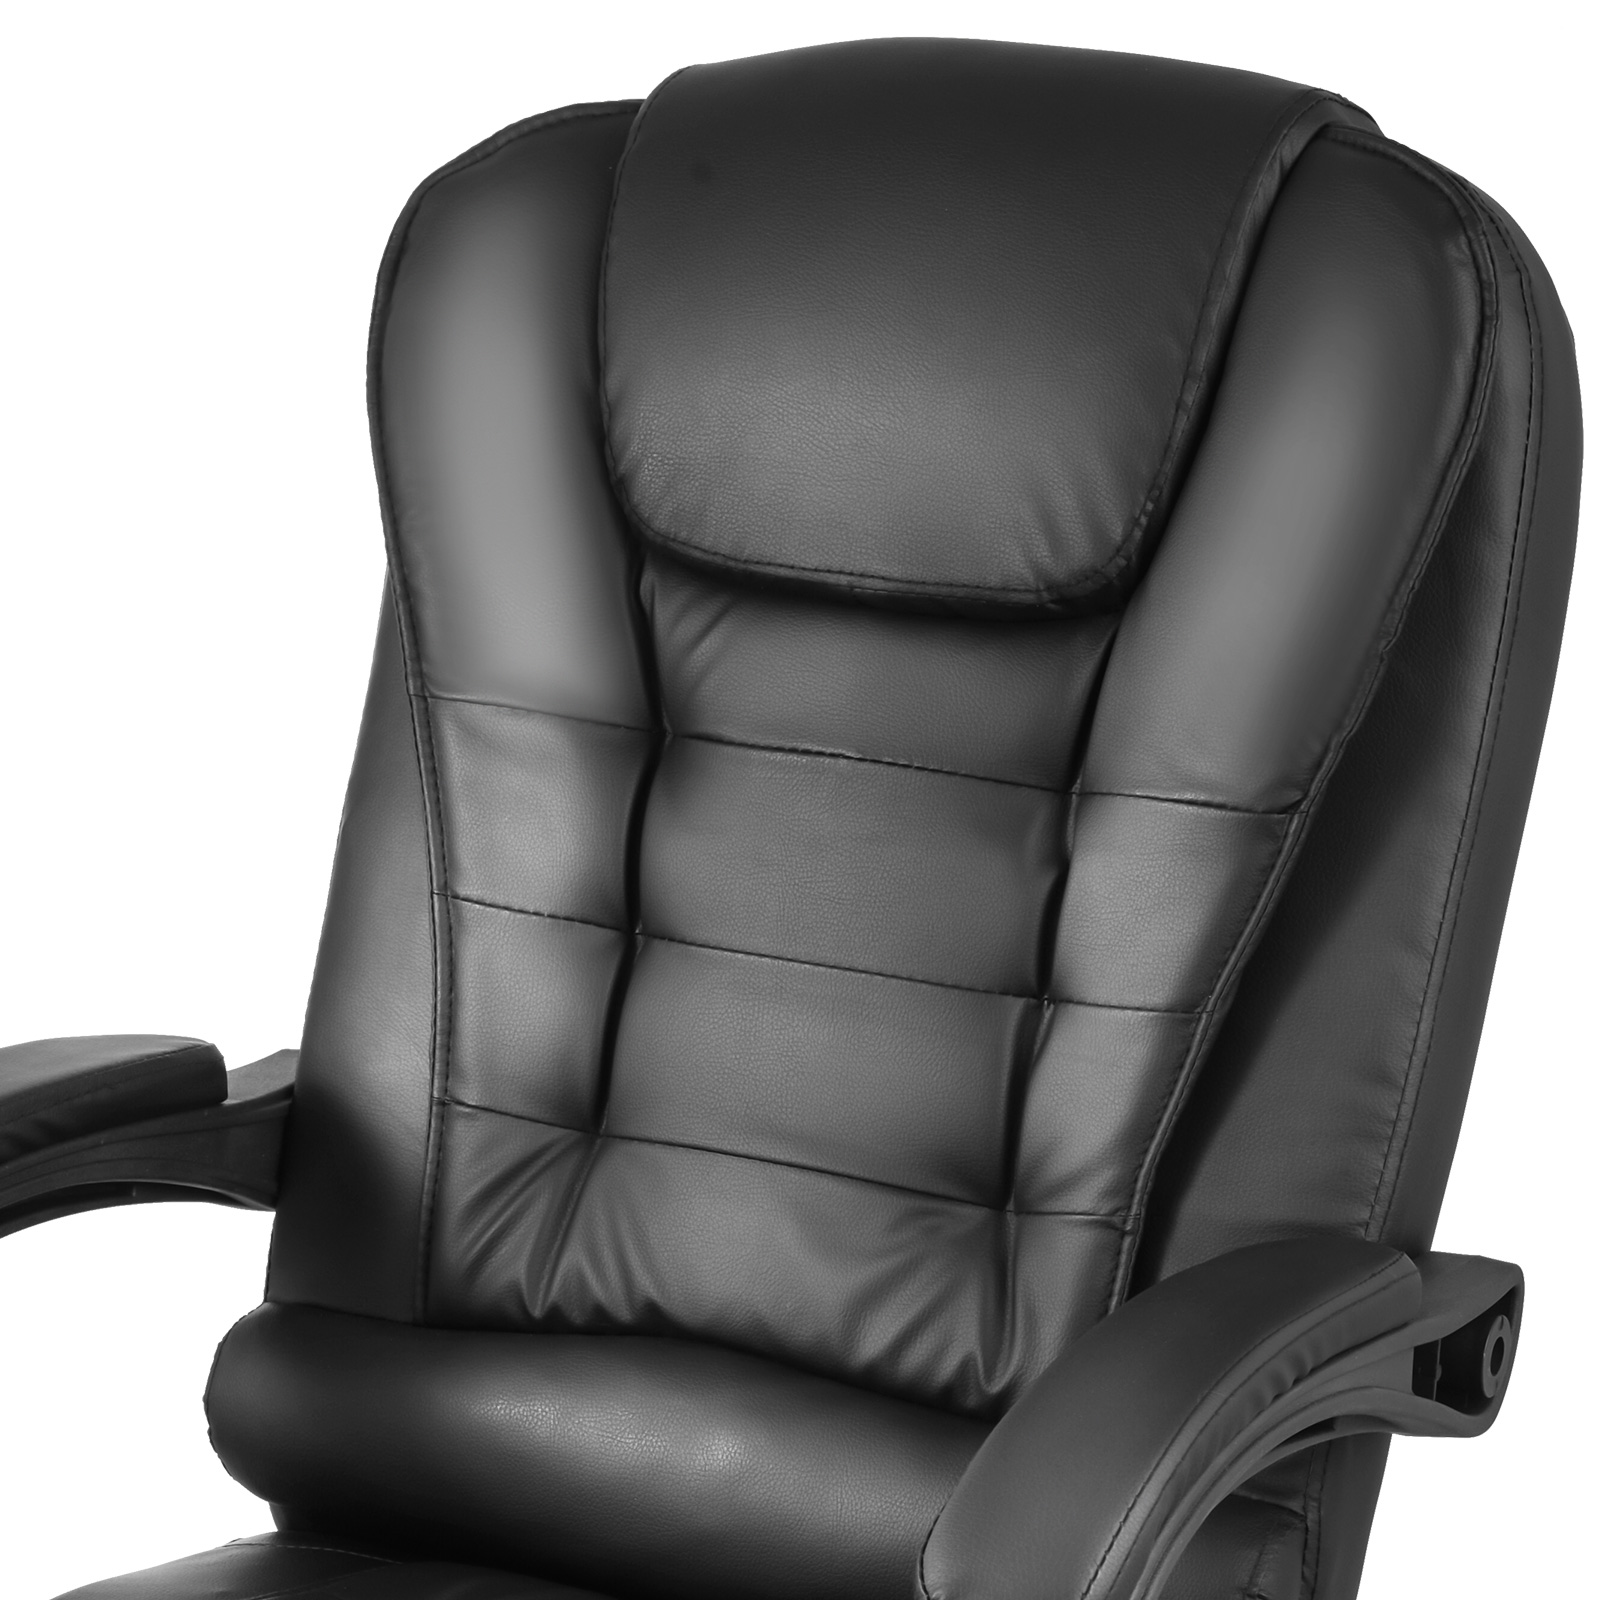 Adjustable Recliner Executive Reclining Office Chair High